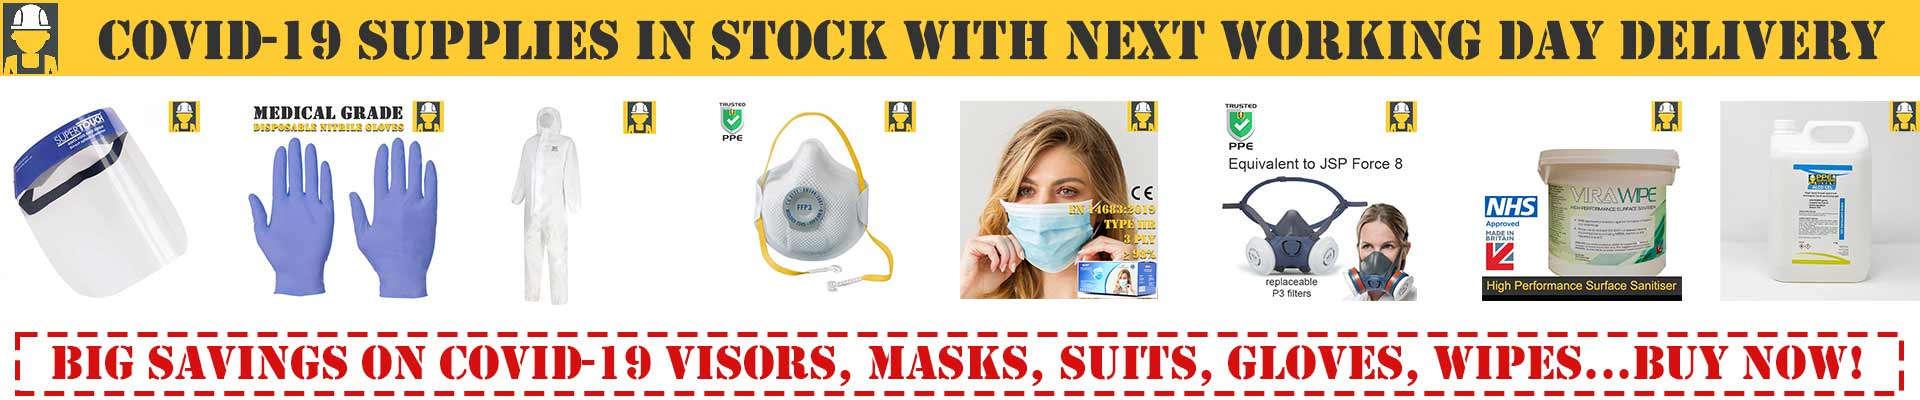 Big-Savings-On-Covid-19-Ppe-And-Hygiene-From-Ppe-Suppliers-Ltd